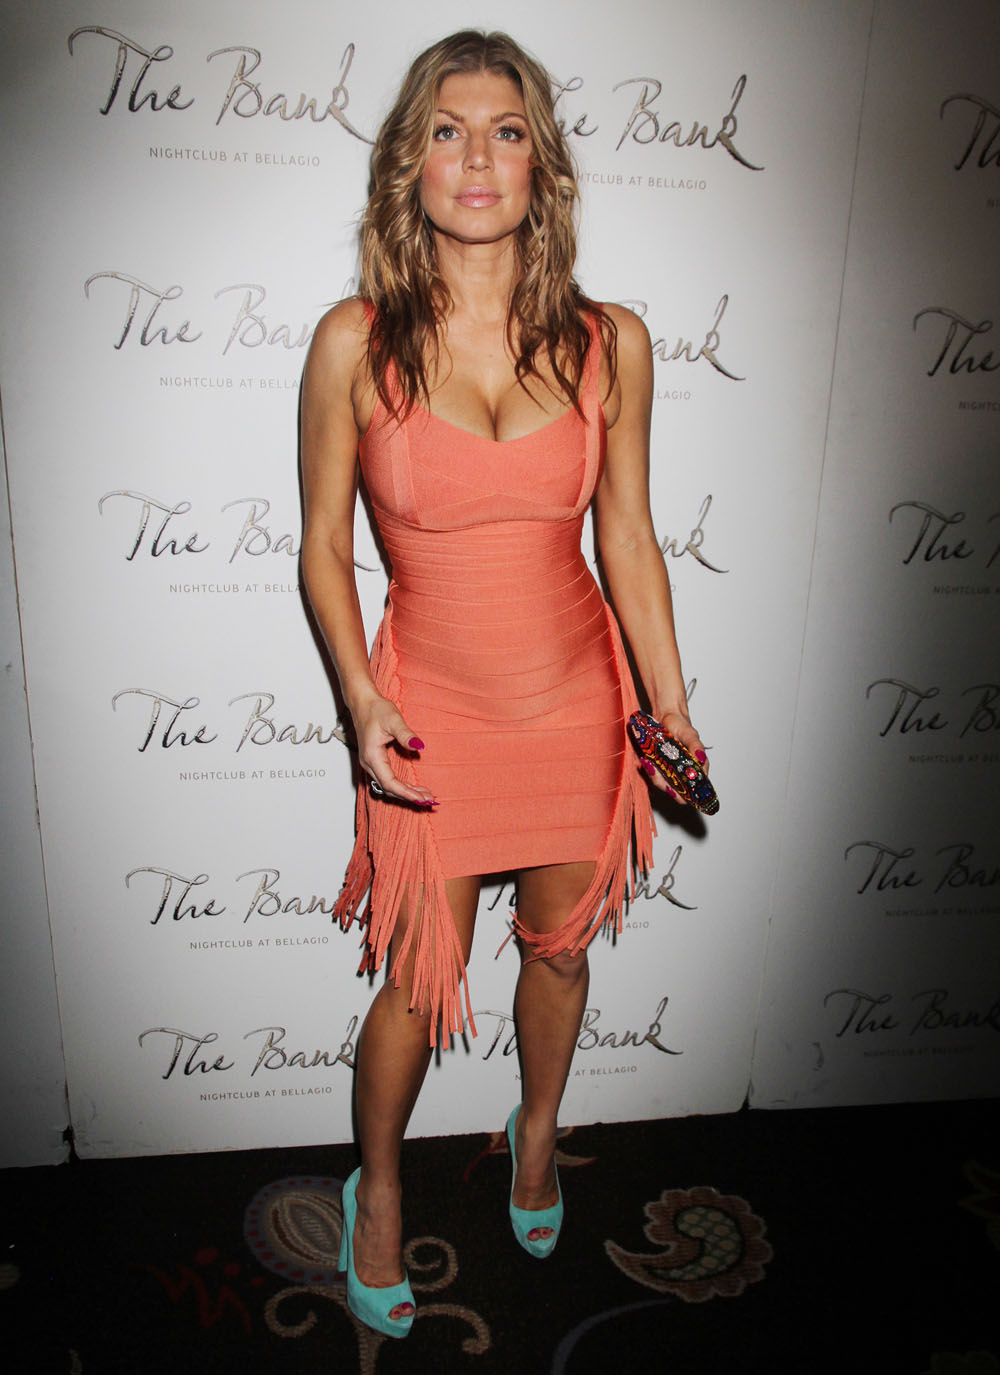 Fergie Flaunting Her Stubborn Hot Body In A Very Tight Dress